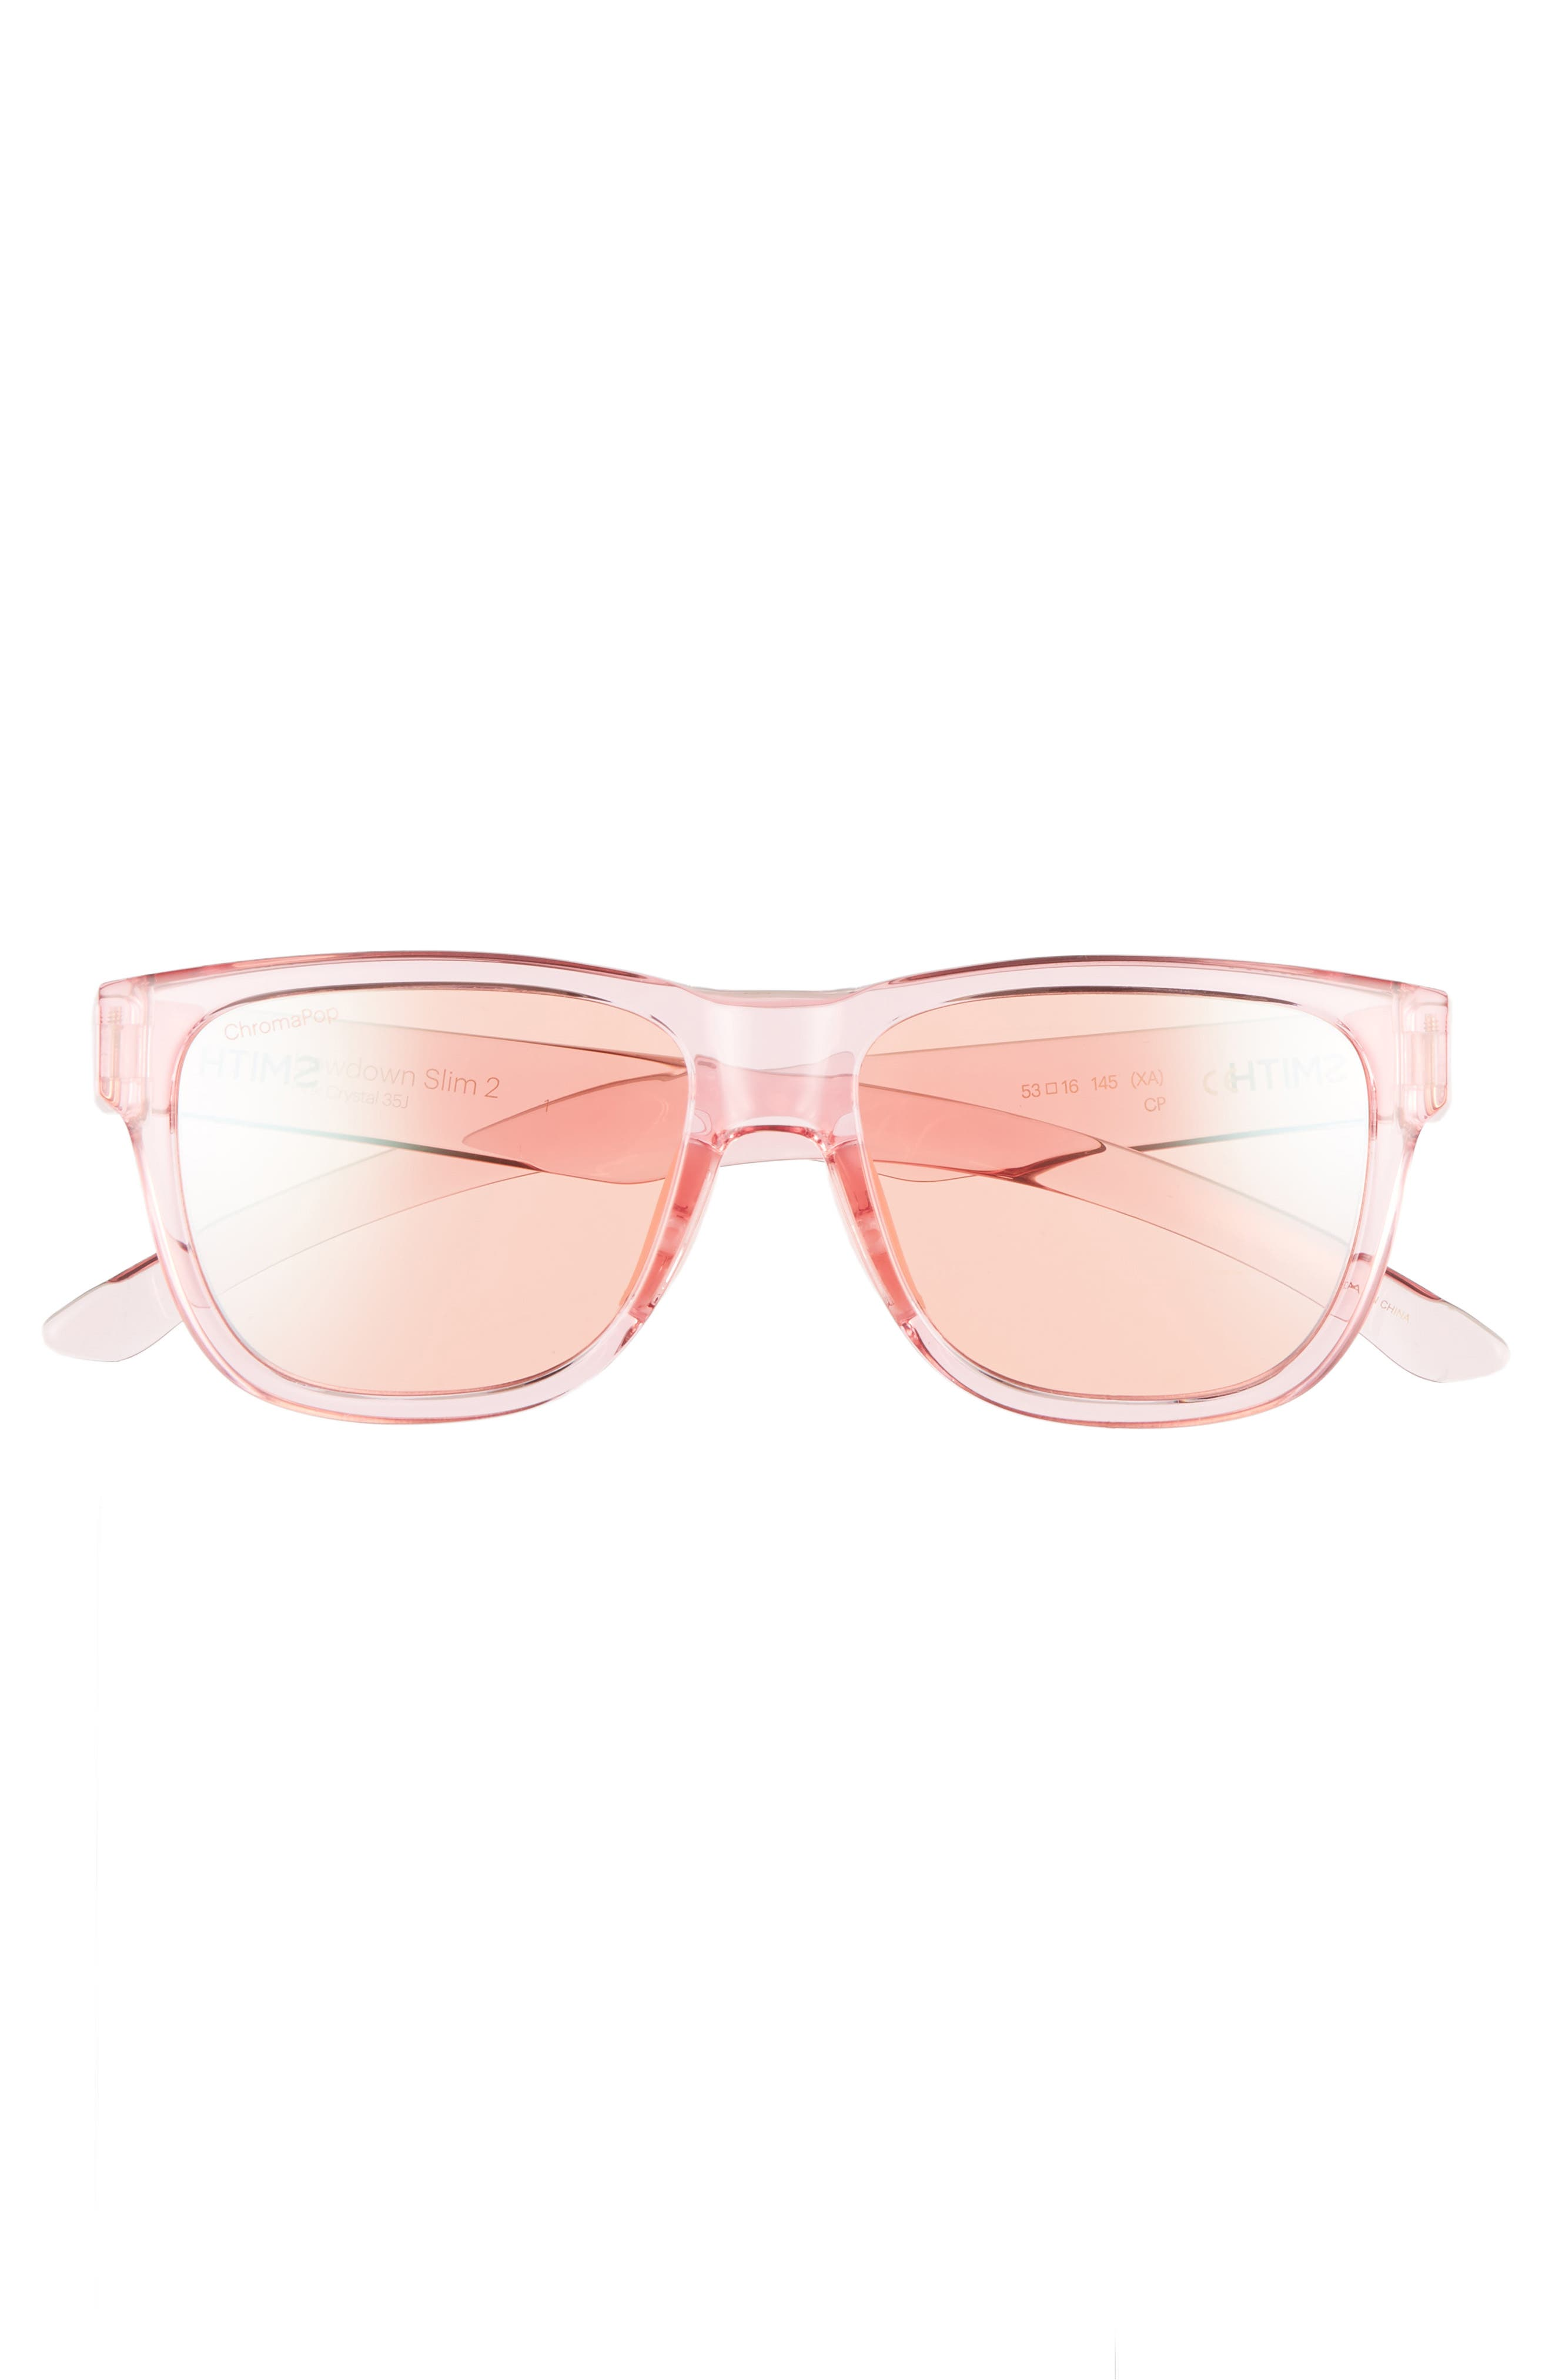 Lowdown Slim 2 53mm ChromaPop<sup>™</sup> Square Sunglasses,                             Alternate thumbnail 3, color,                             PINK CRYSTAL